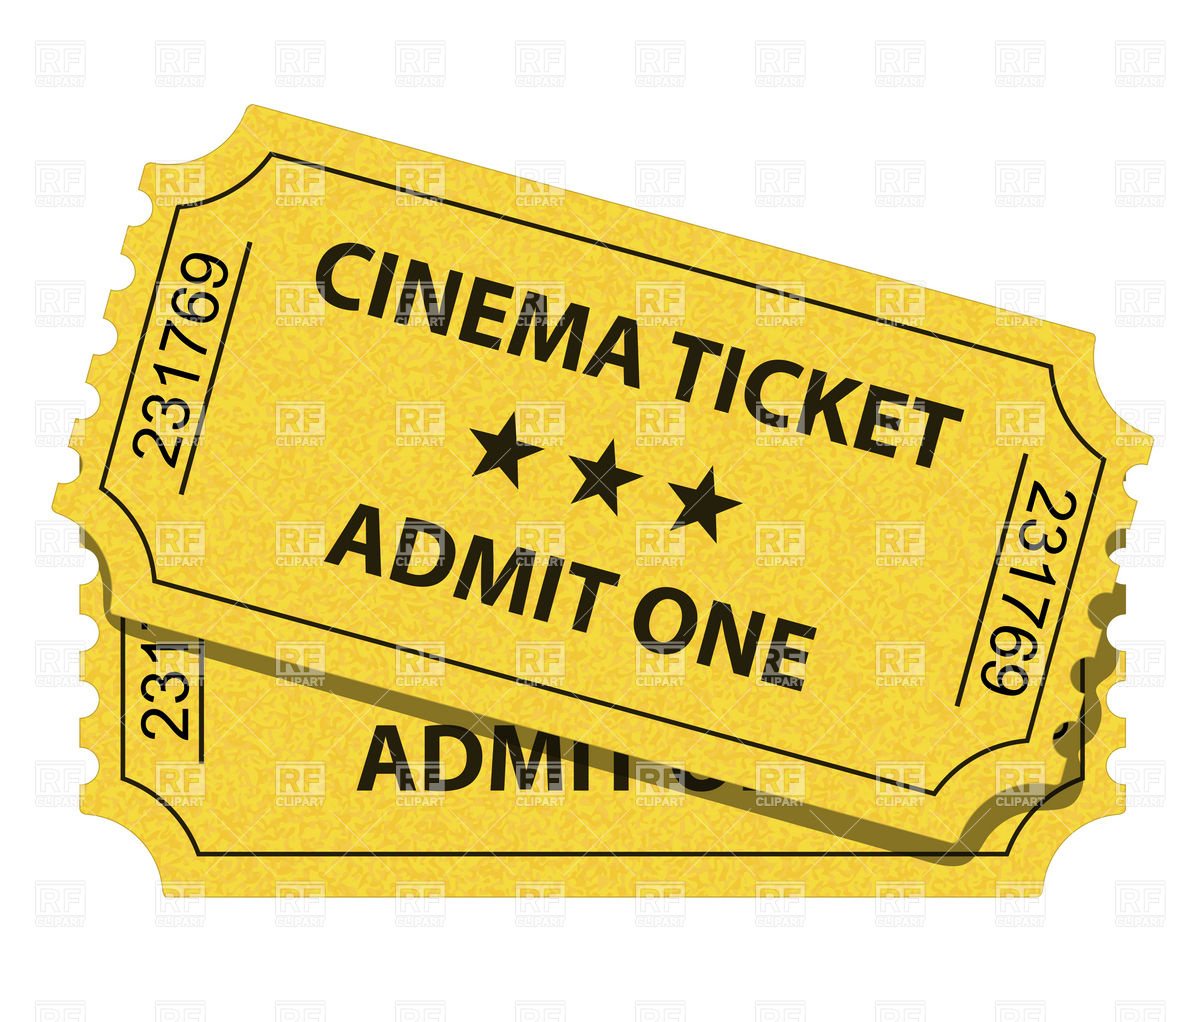 Cinema Ticket Clipart Clipartfox-Cinema ticket clipart clipartfox-13